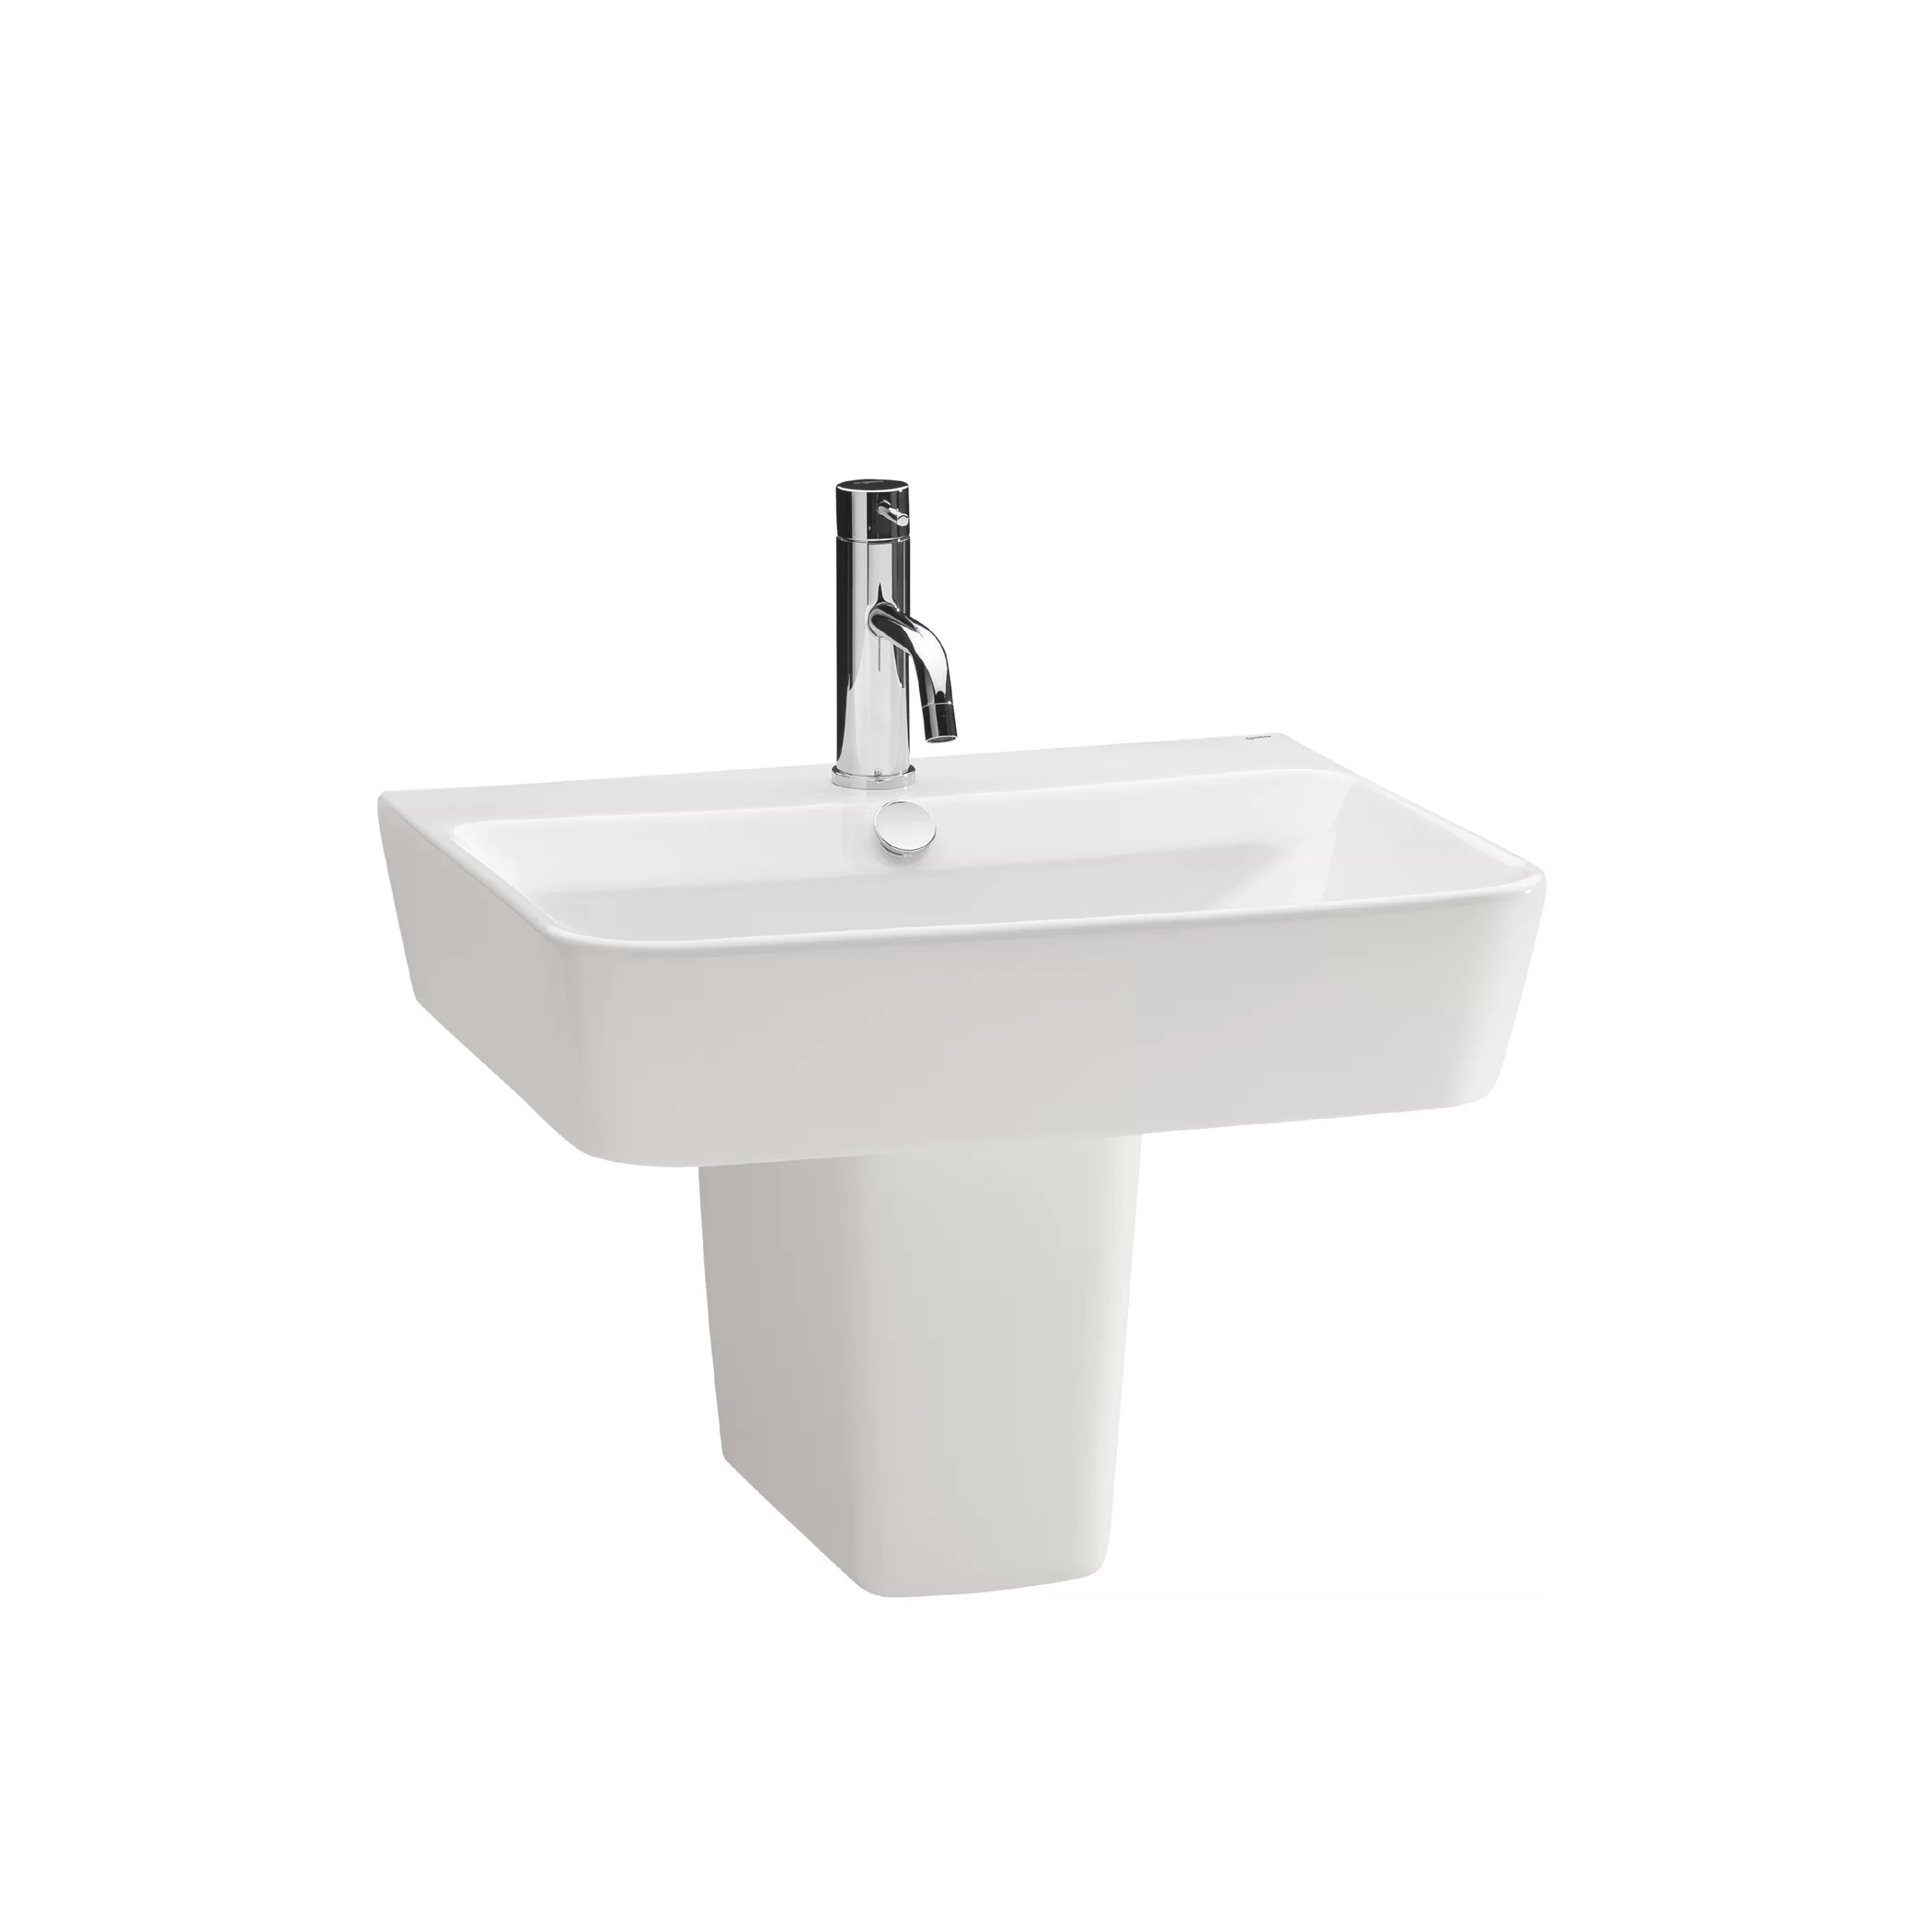 Industrial Pedestal Sink Bissonnet Emma Full Pedestal Overflow Bathroom Sink